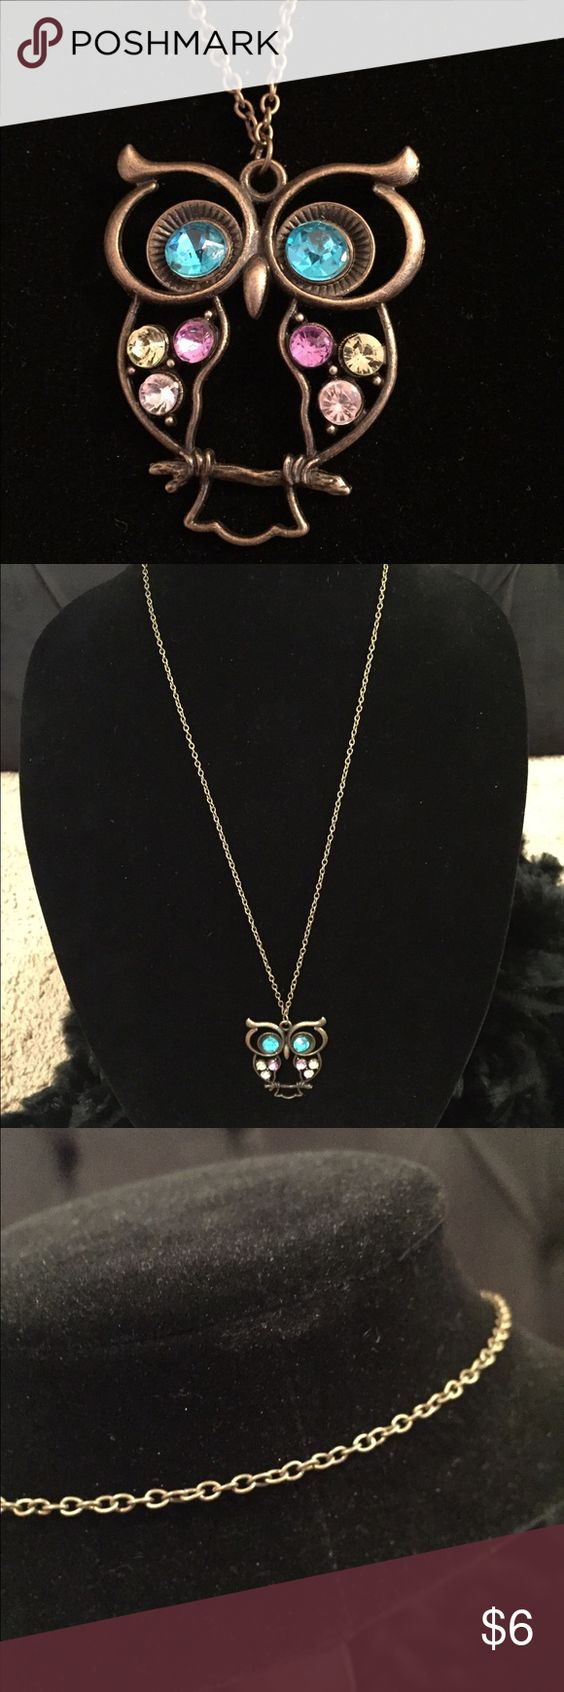 "Claire's Old Gold Owl Pendant Necklace Claire's Old Gold Owl Pendant Necklace! Simple but fun owl pendant necklace in old gold with multicolored gems. Necklace is 16"" with no closure/slip on. Buy more and save more with my jewelry bundling deals! 😊💎💖 Claire's Jewelry Necklaces"